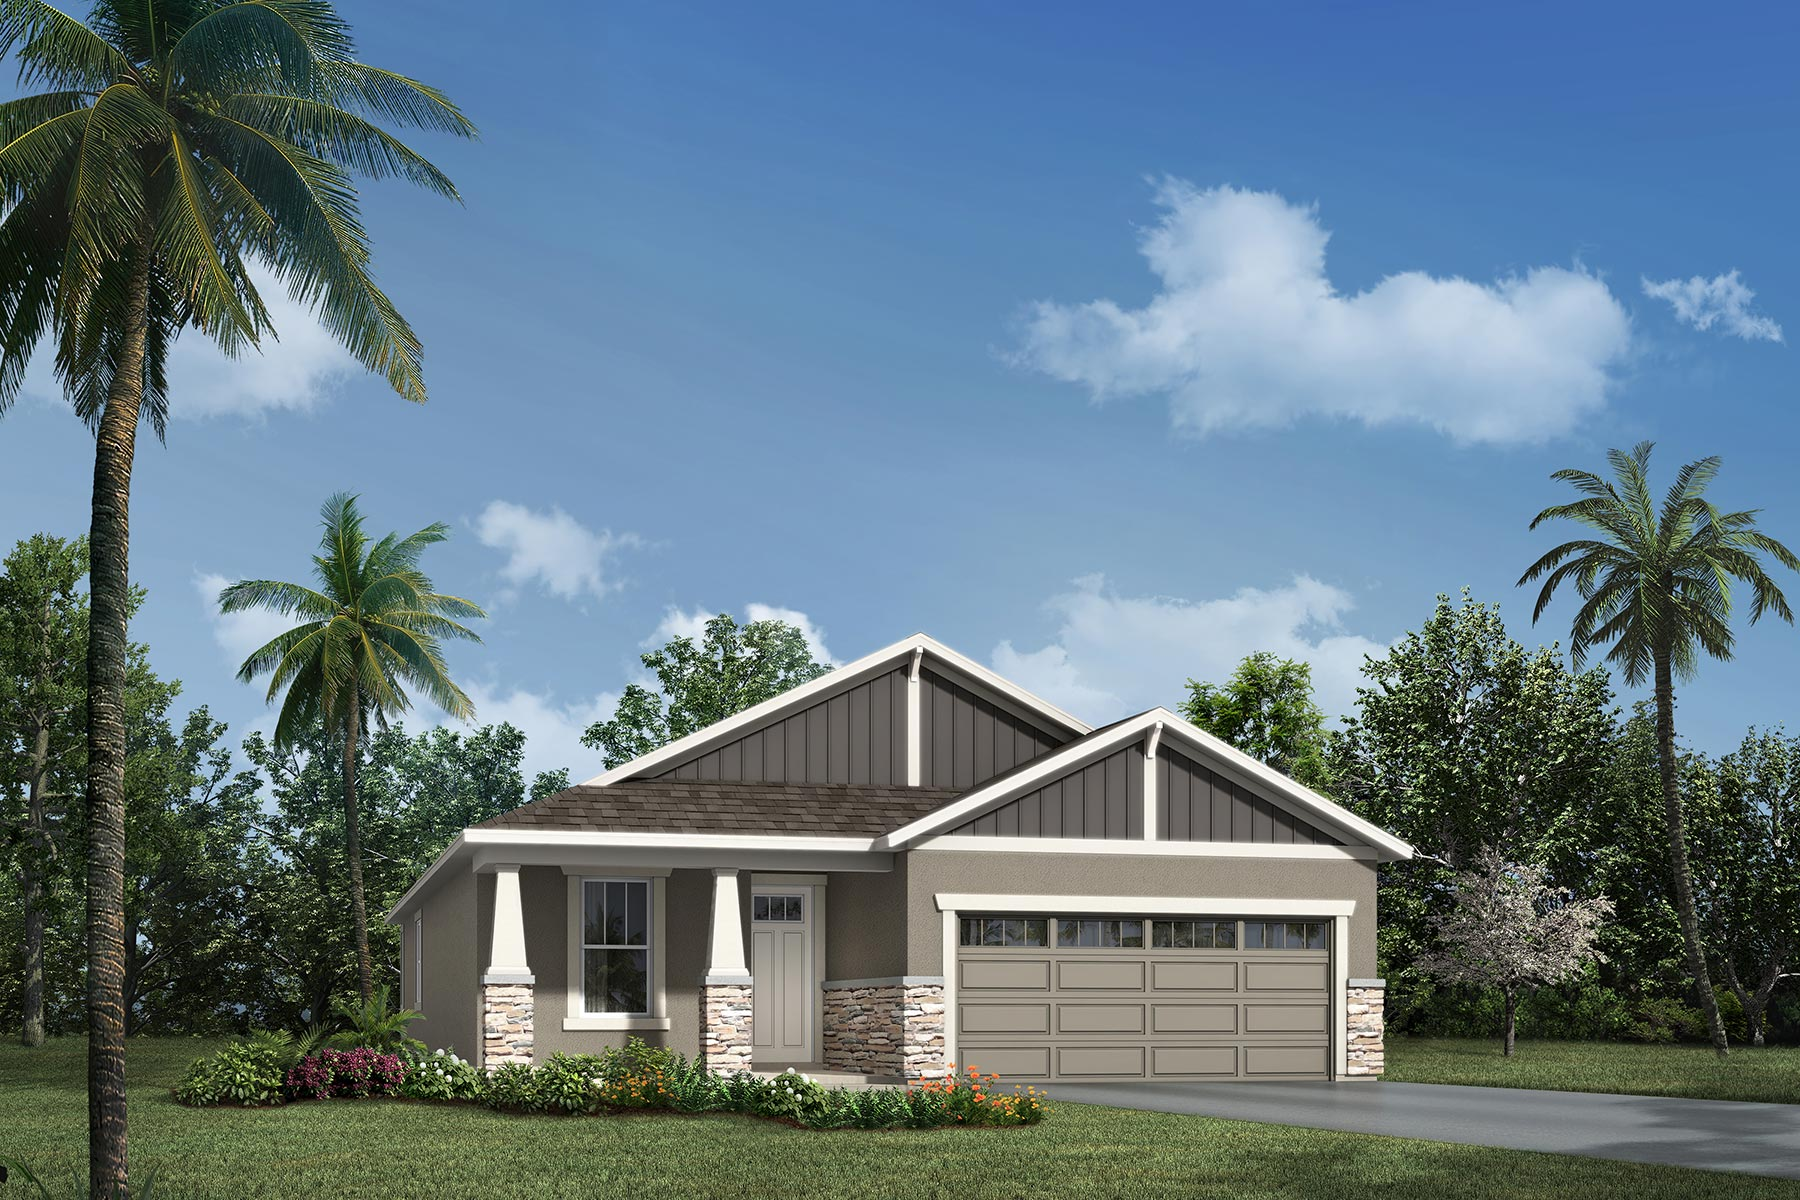 Barton Plan Elevation Front at Tohoqua in Kissimmee Florida by Mattamy Homes